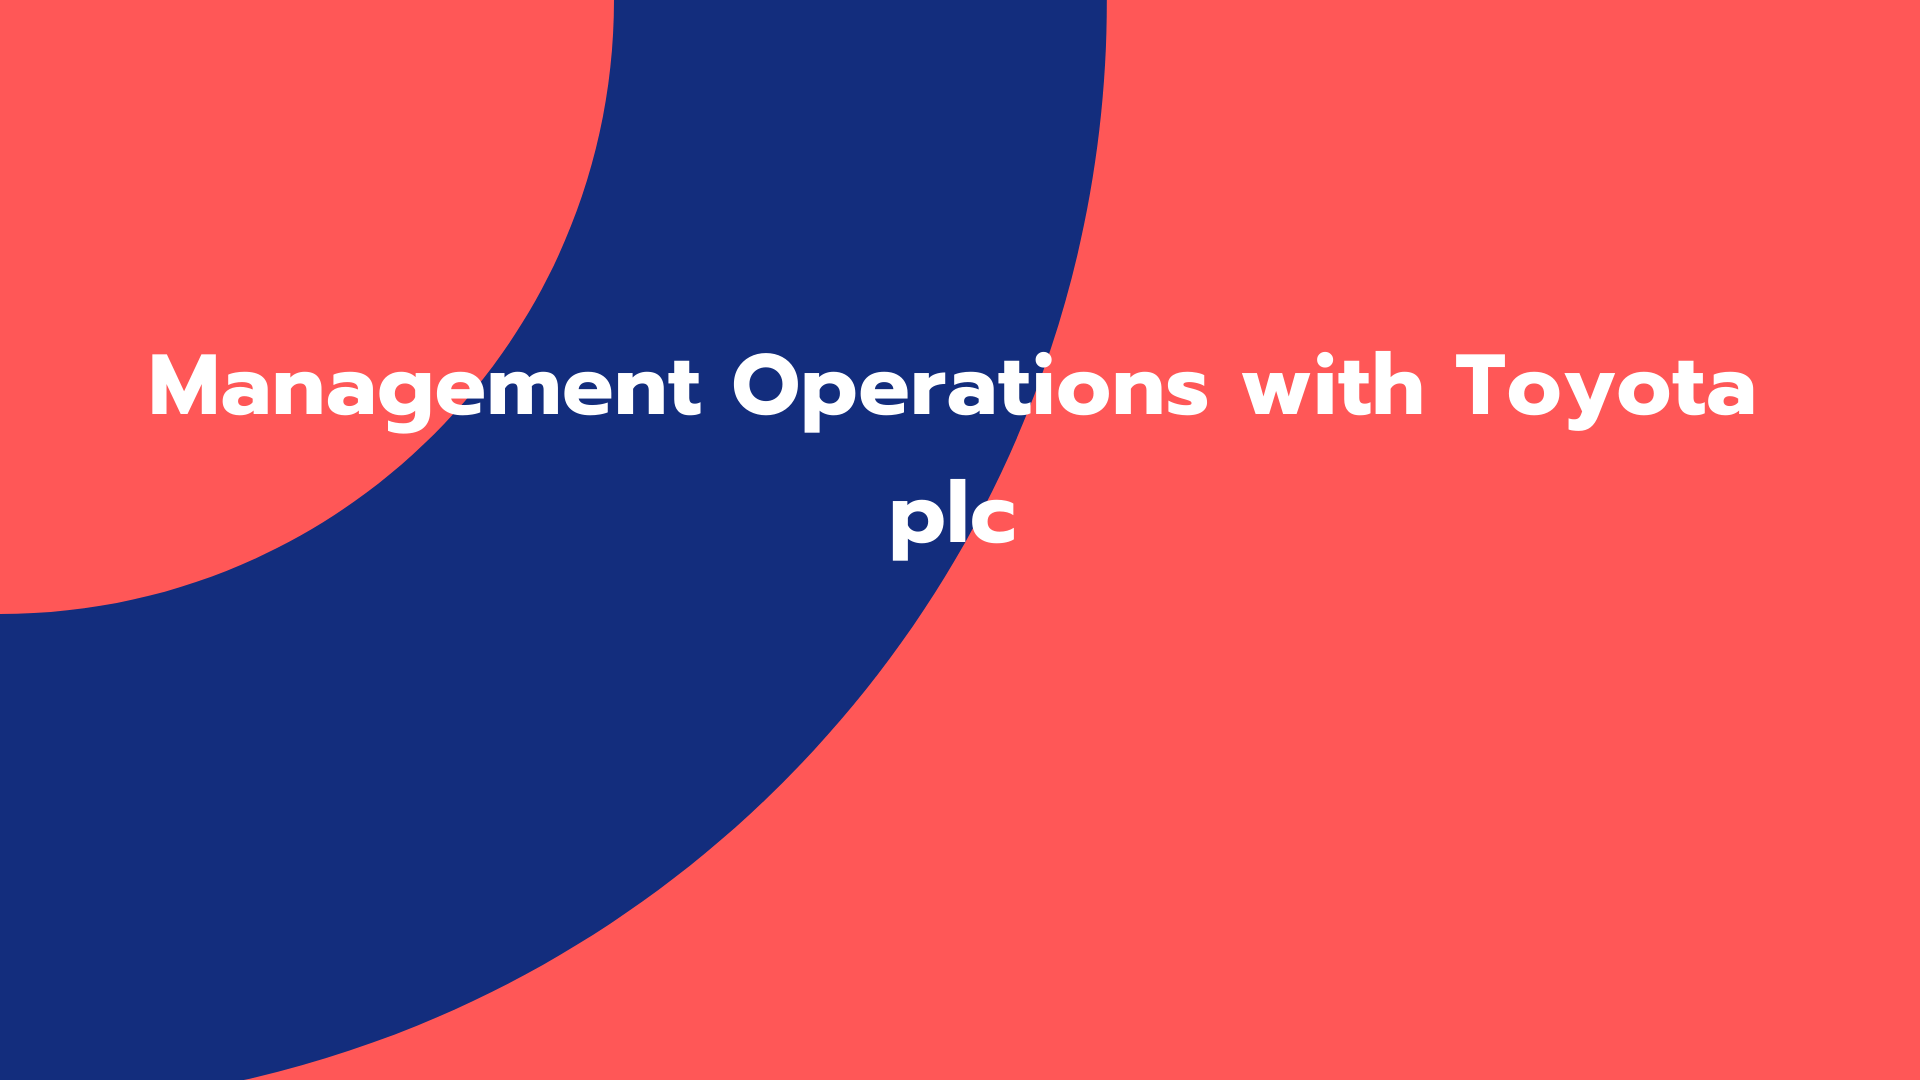 Management Operations with Toyota plc